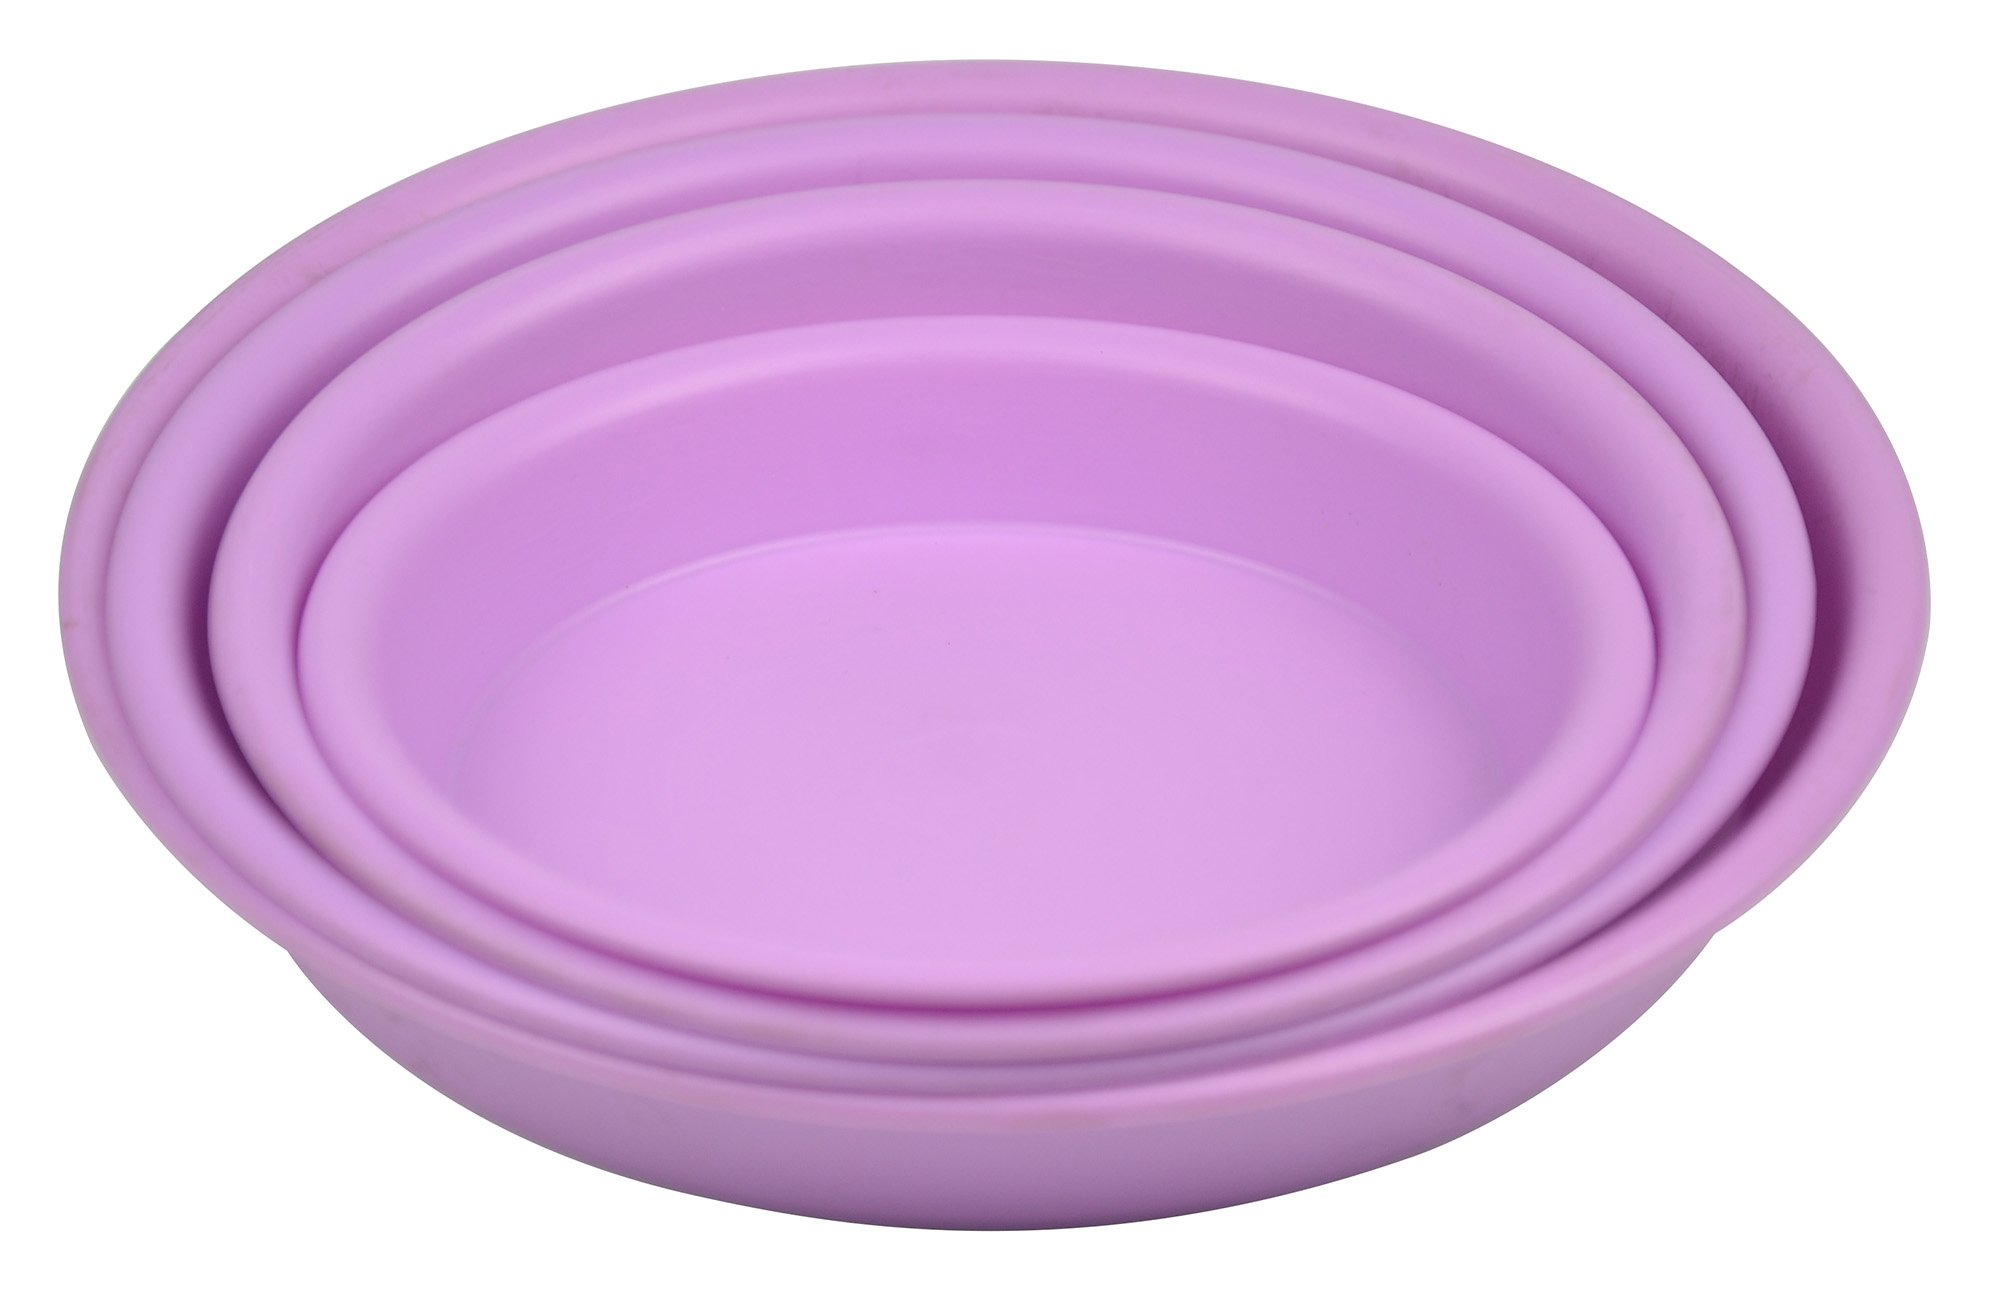 7.7'' Round Plant Saucer Planter Tray Pat Pallet for Flowerpot,Purple,960 Count by Zhanwang